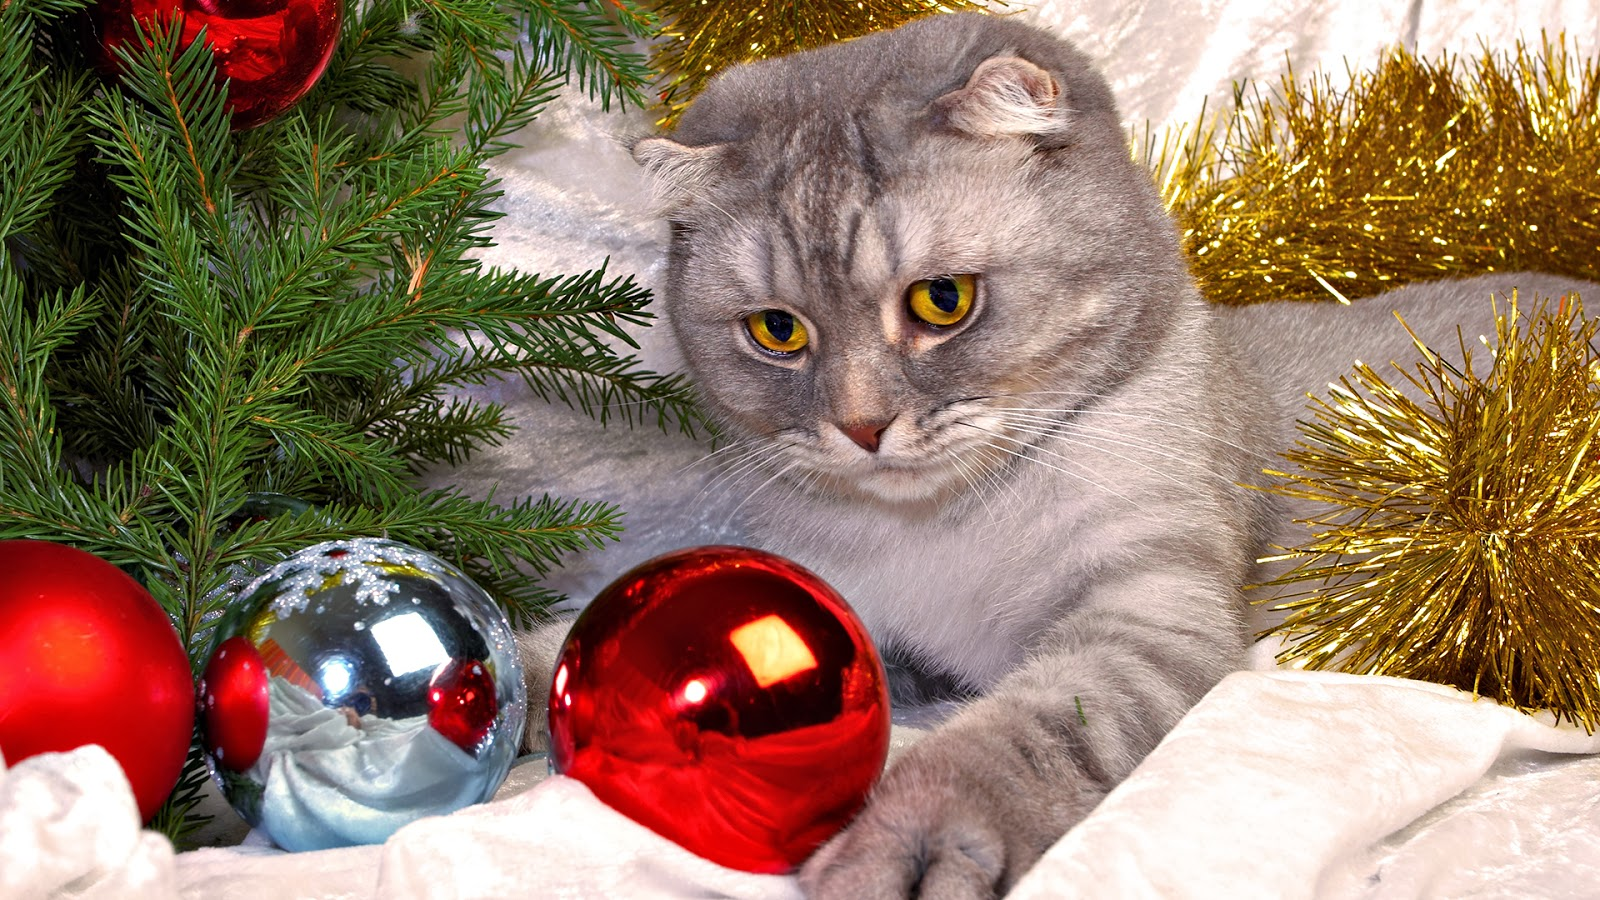 Cute Cats Christmas HD Wallpapers   HD Wallpapers Blog 1600x900